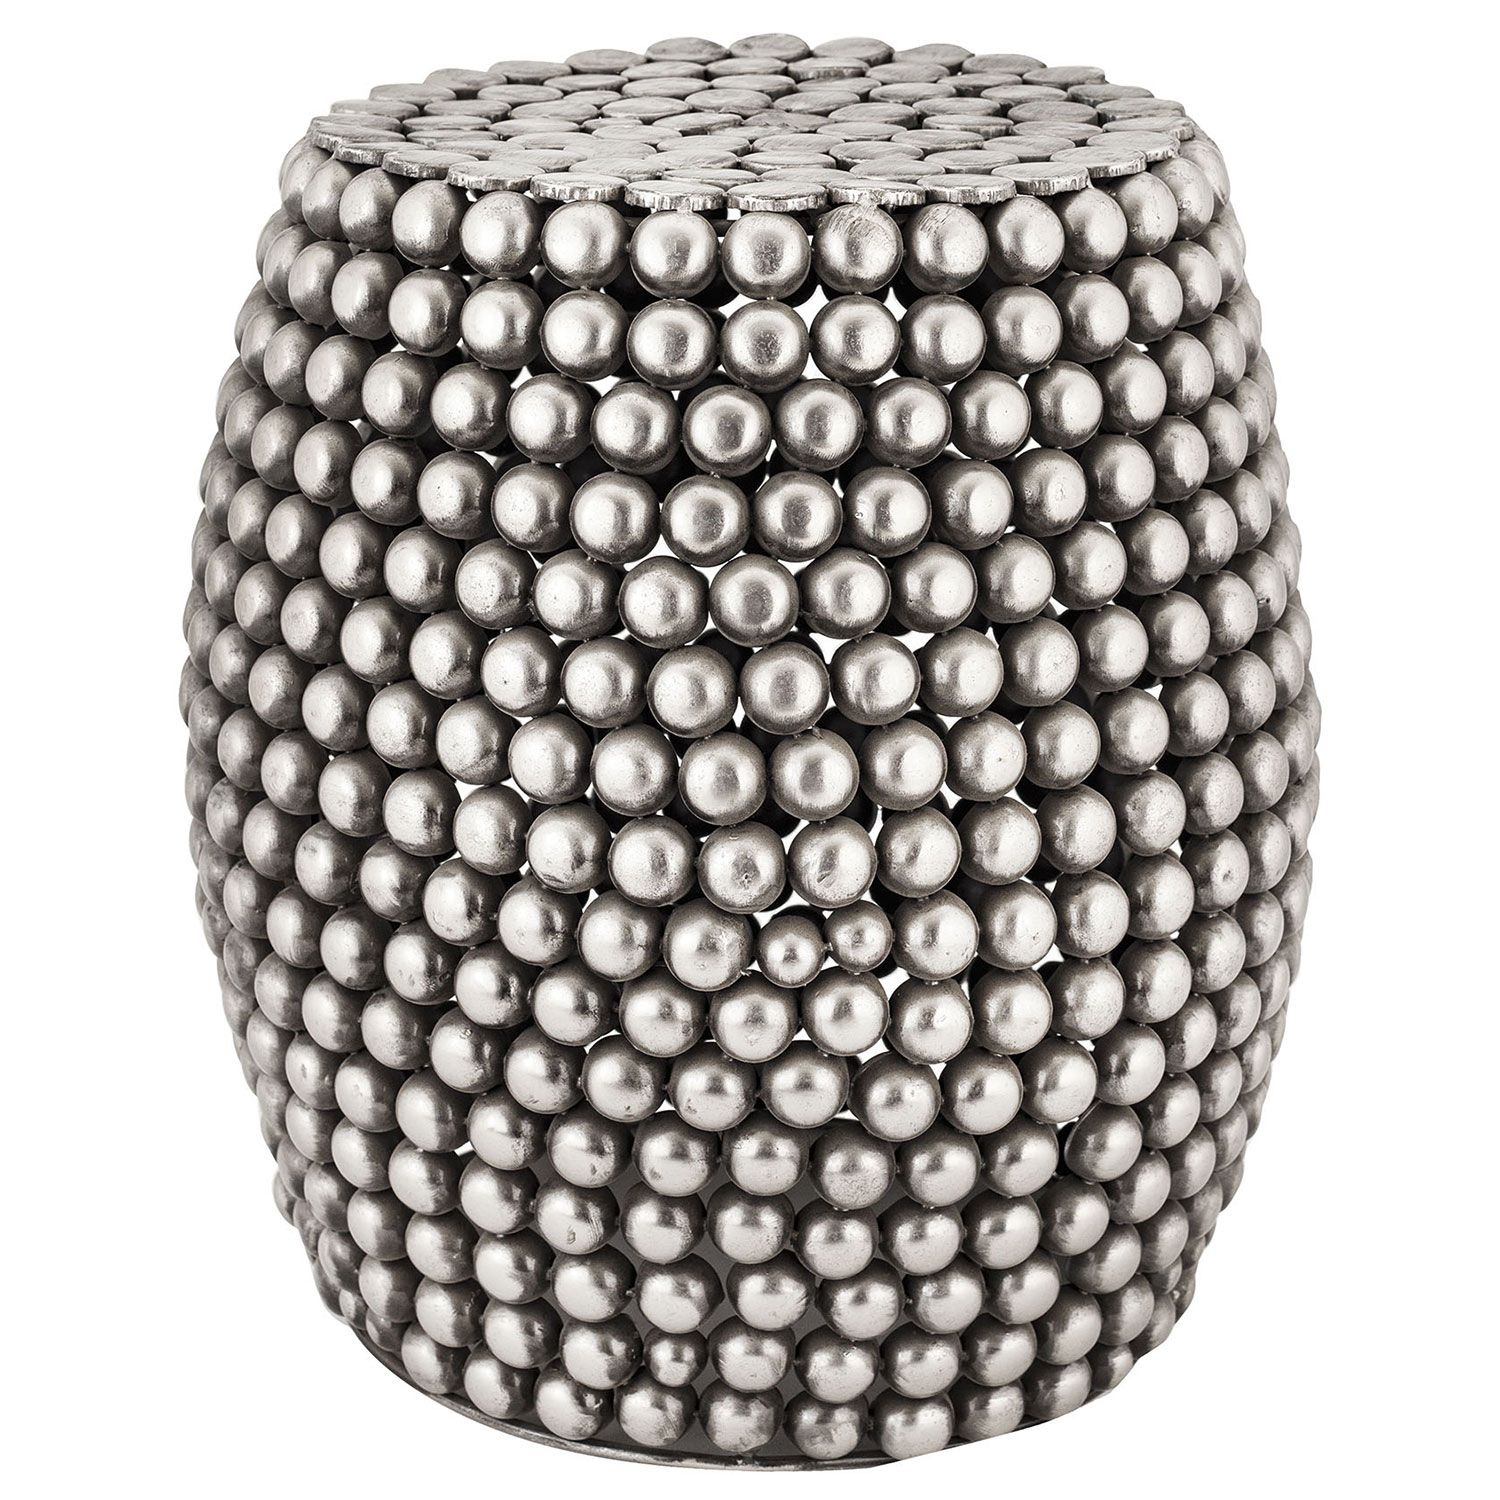 The Pewter Pebble stool delivers edgy modernity to interiors. Boasting a sleek drum shape, this alluring furnishing showcases…